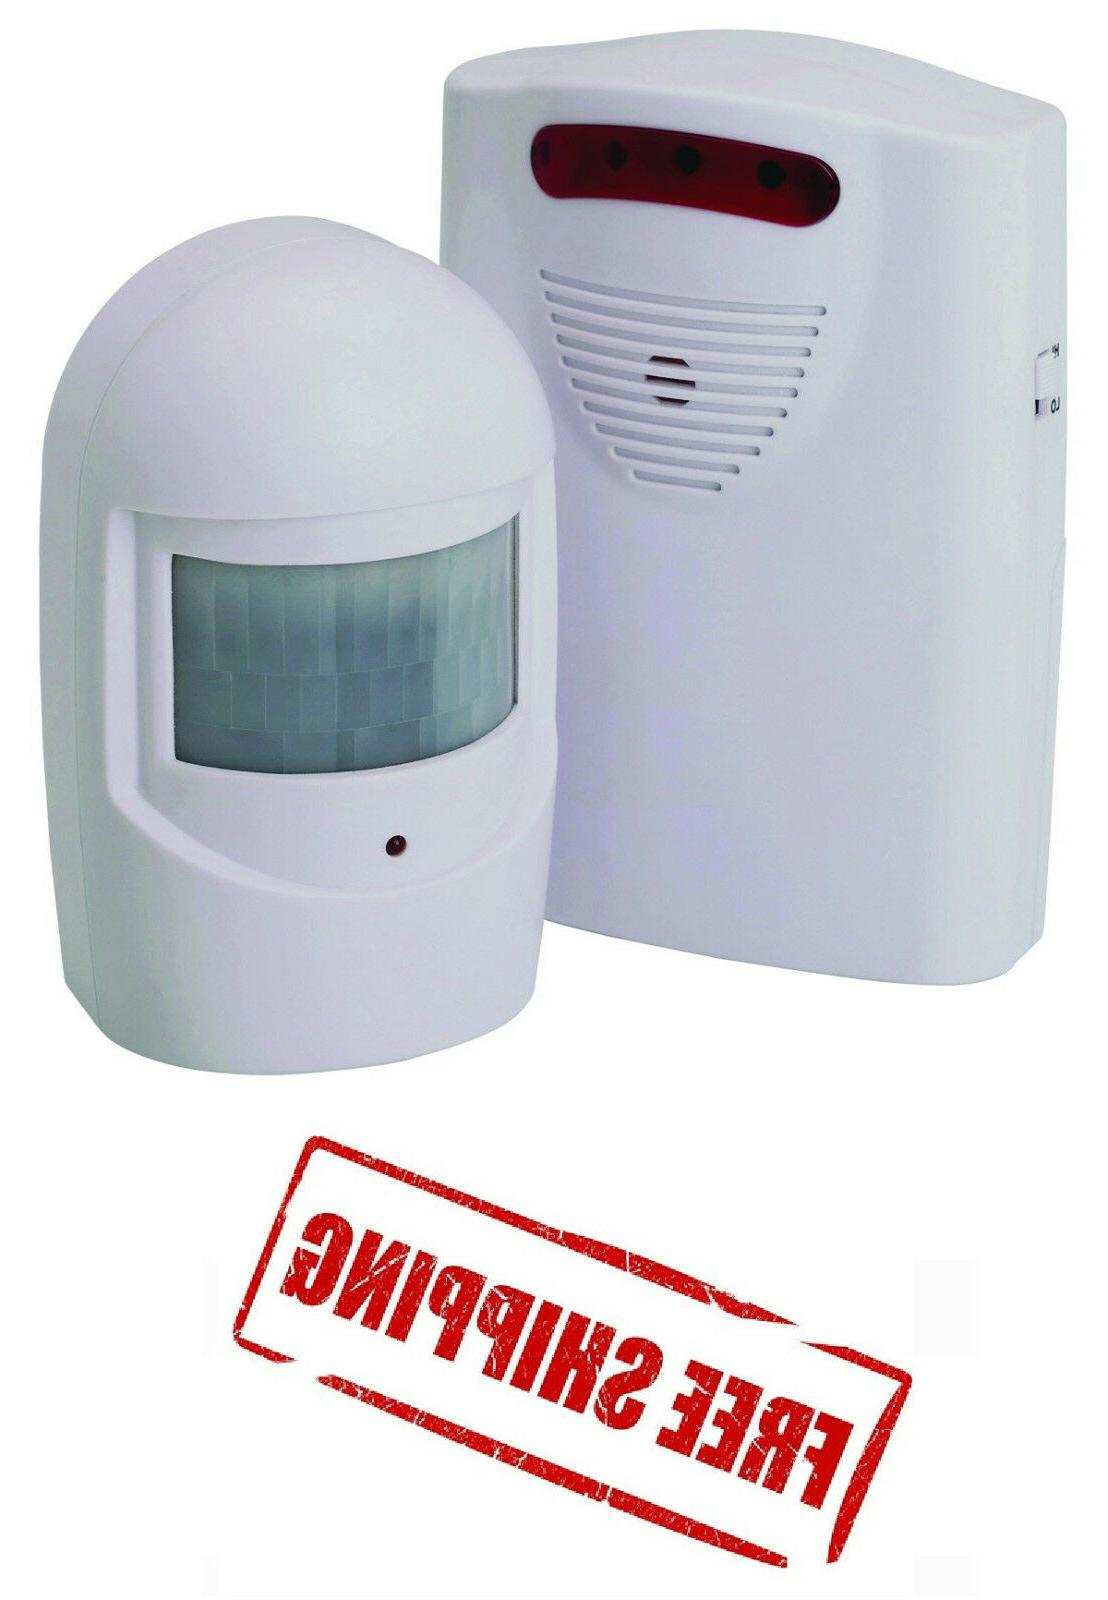 Wireless Motion Activated RETAIL STORE ENTRANCE ENTRY ALARM